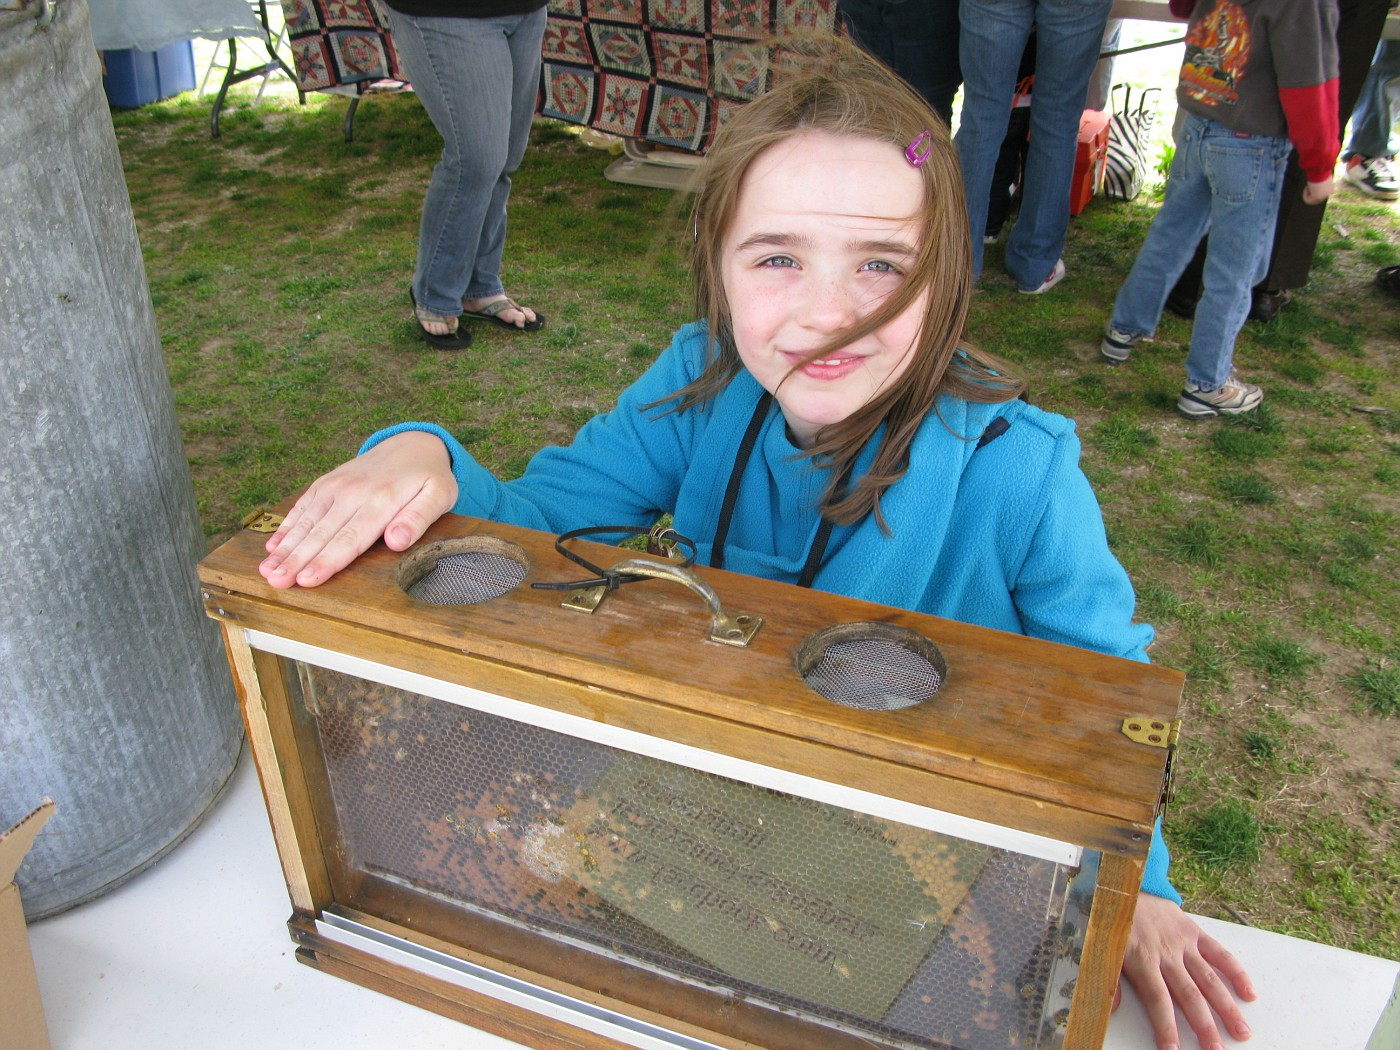 """This young person already knew she wanted to be an """"Entomoligist""""  (one who studies insects)"""